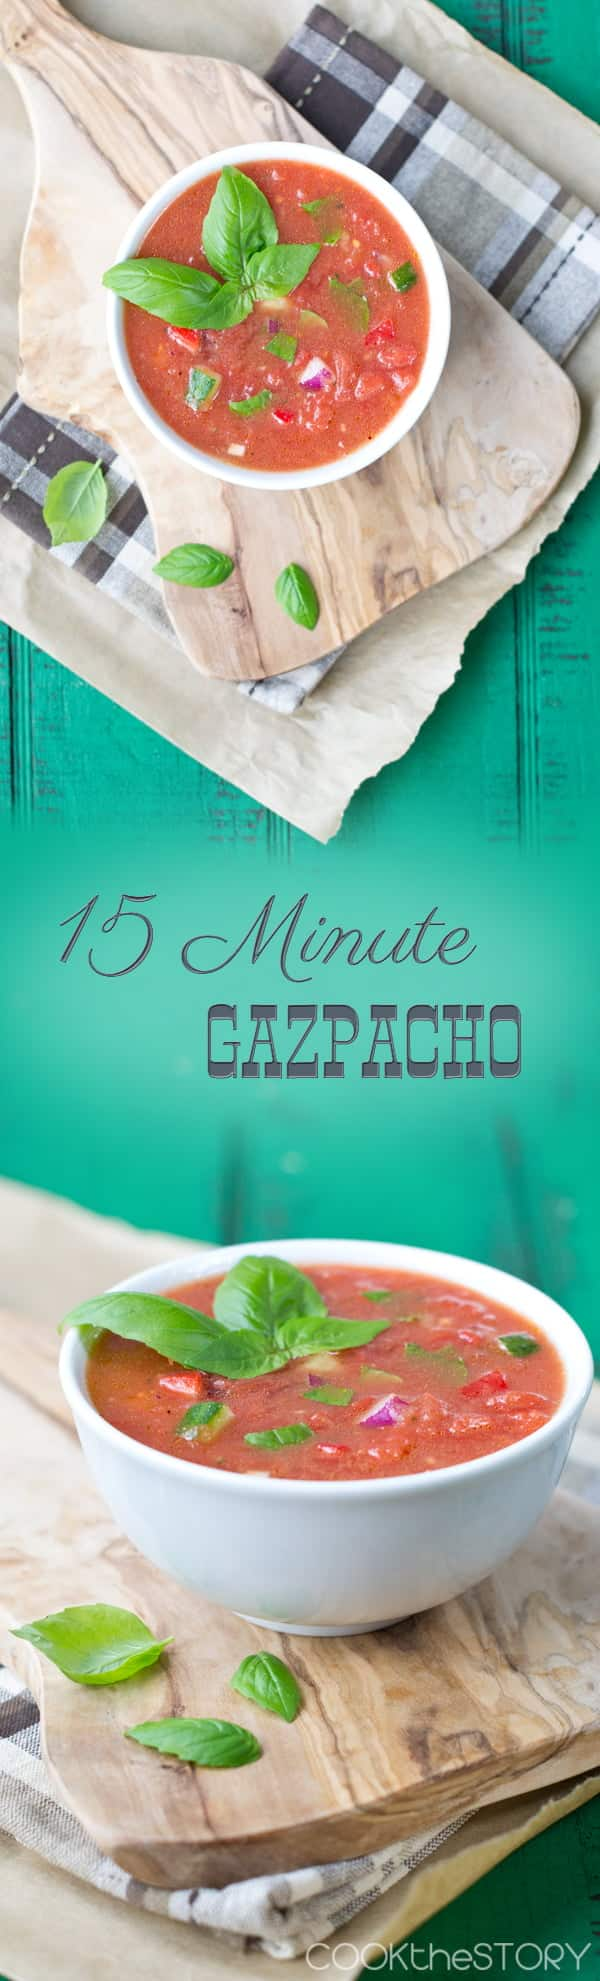 An easy Gazpacho recipe perfect for the summer months ahead!